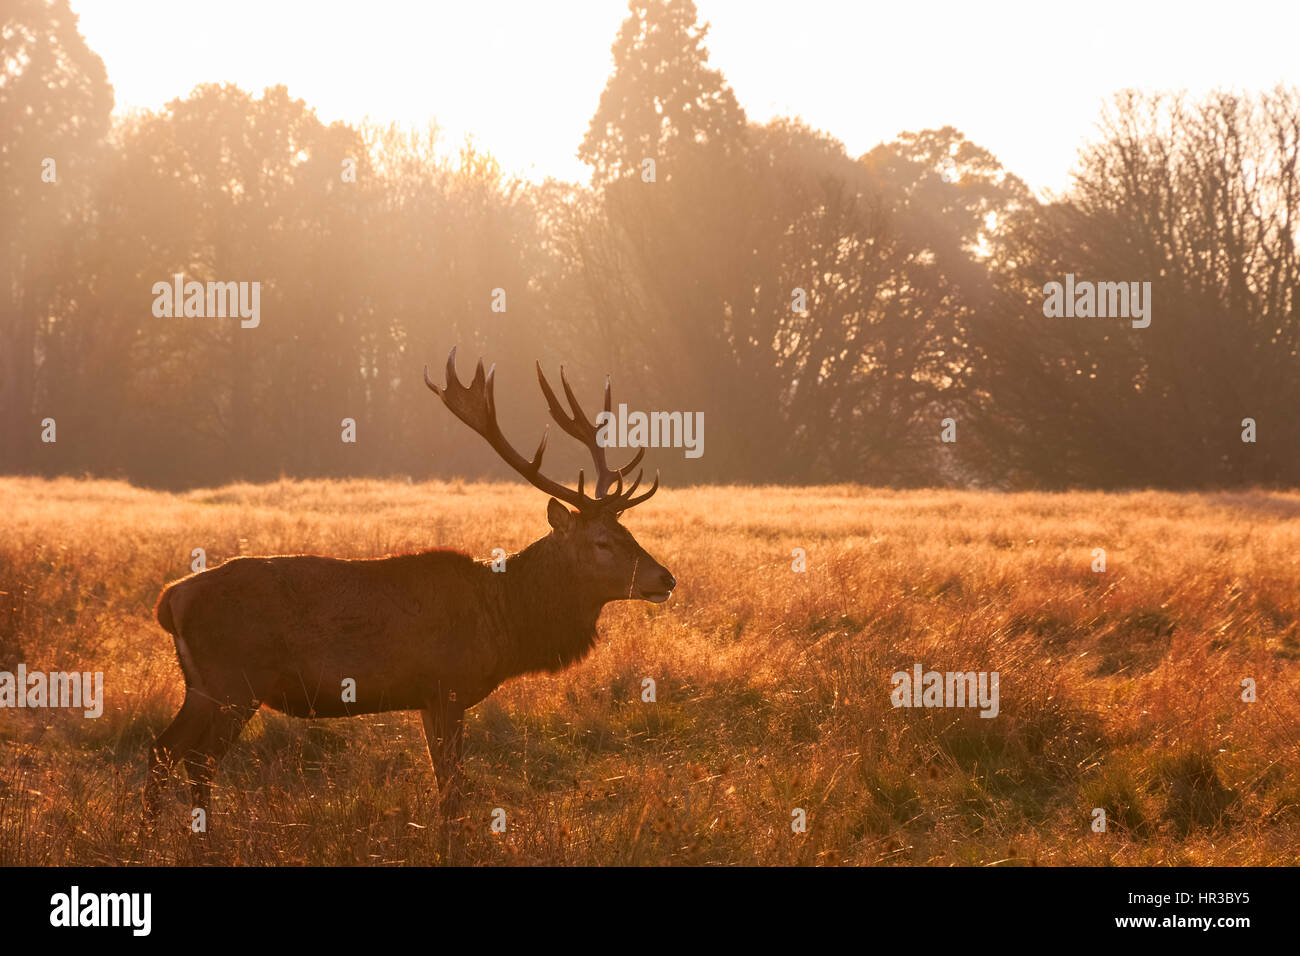 Red deer in Richmond Park, London - Stock Image